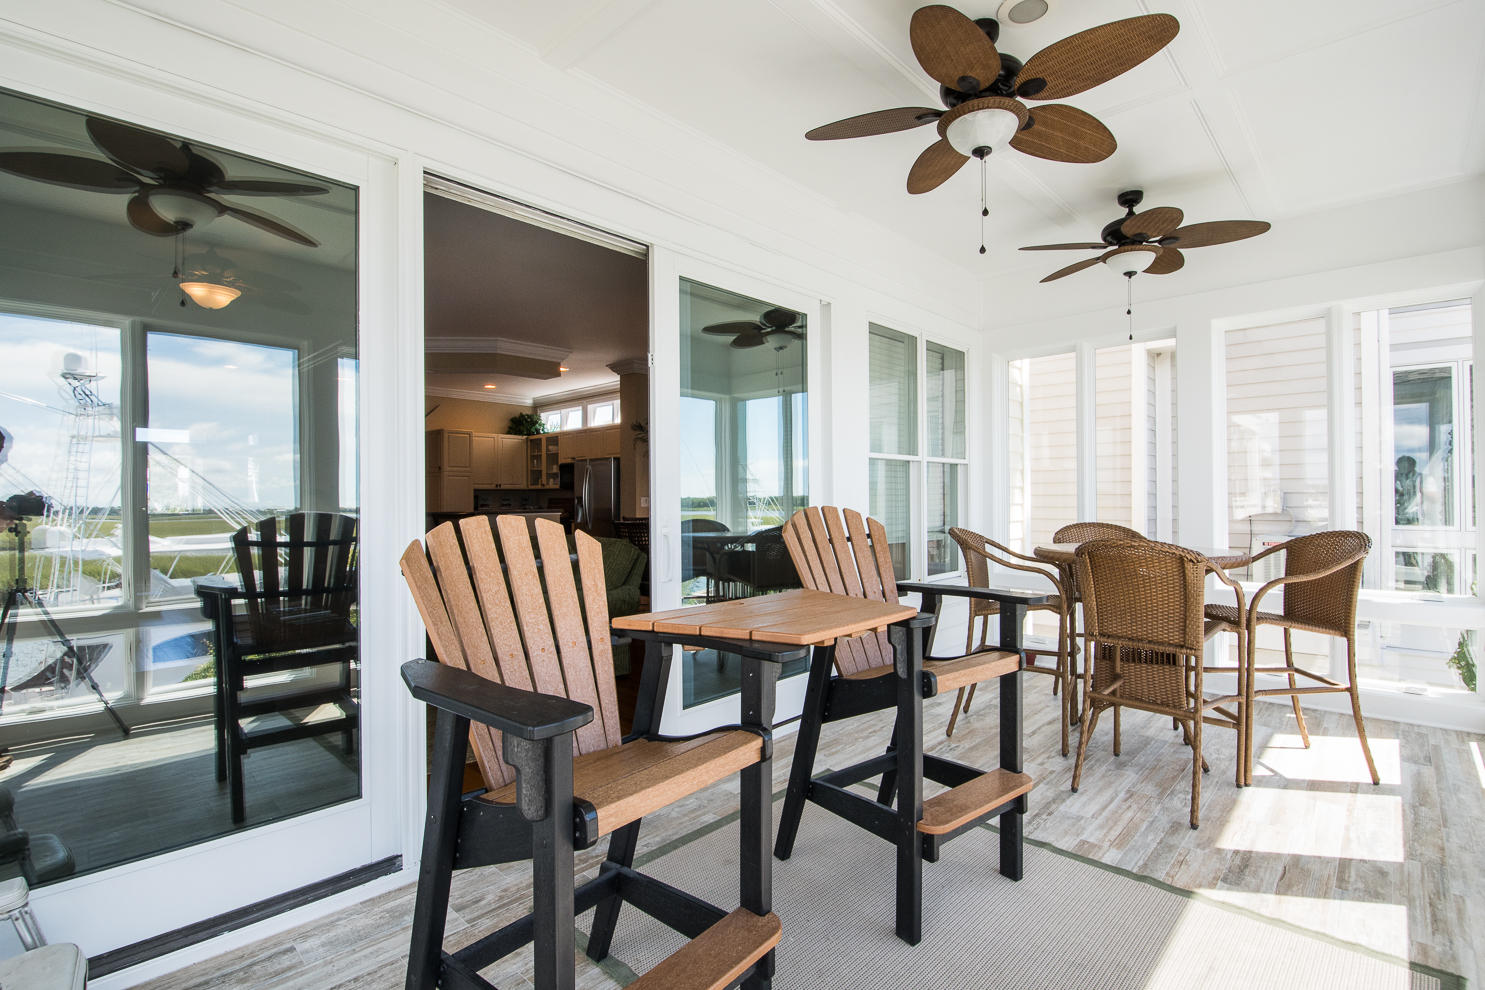 Tolers Cove Homes For Sale - B-4 & B-5 Tolers Cove Marina 70ft + Home, Mount Pleasant, SC - 26